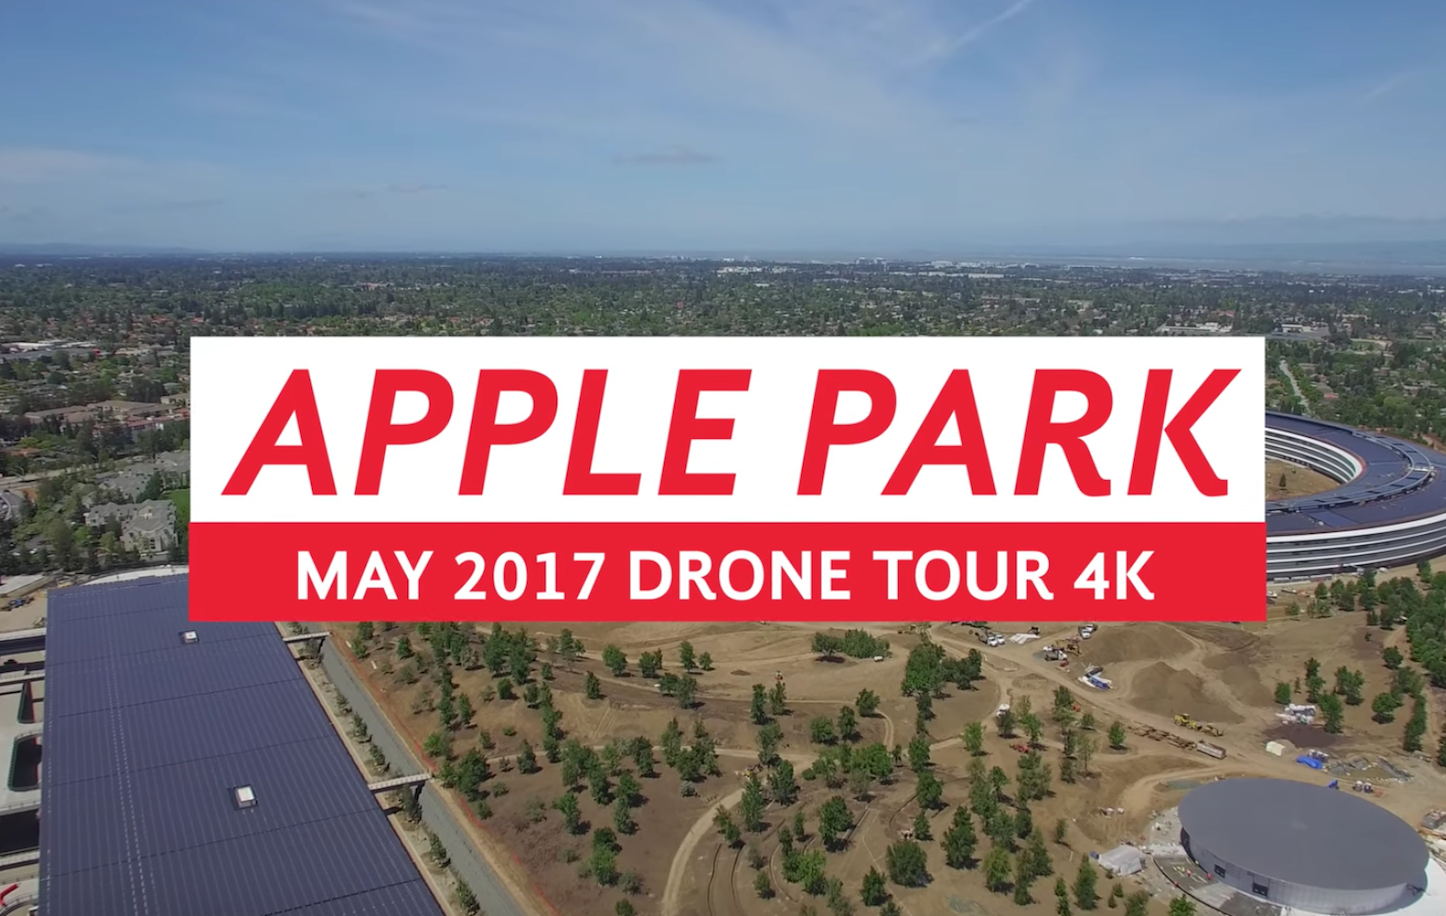 Apple Park May 2017